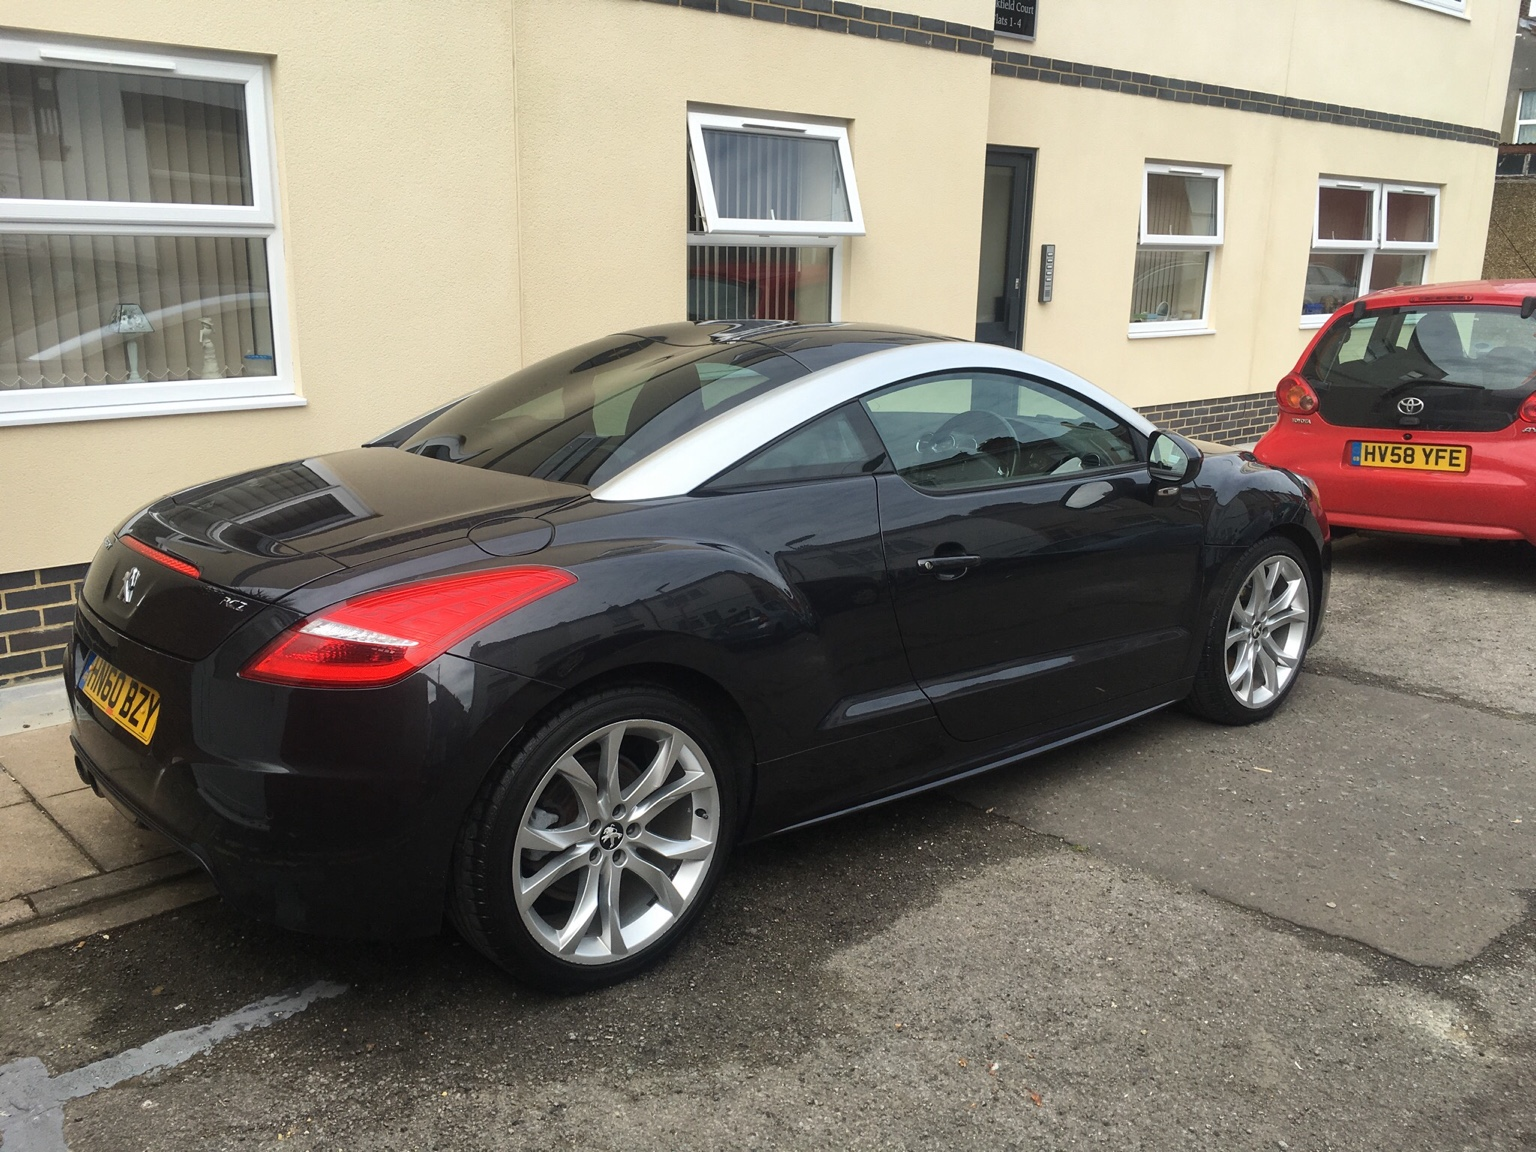 peugeot rcz forum new to the forum newbies. Black Bedroom Furniture Sets. Home Design Ideas